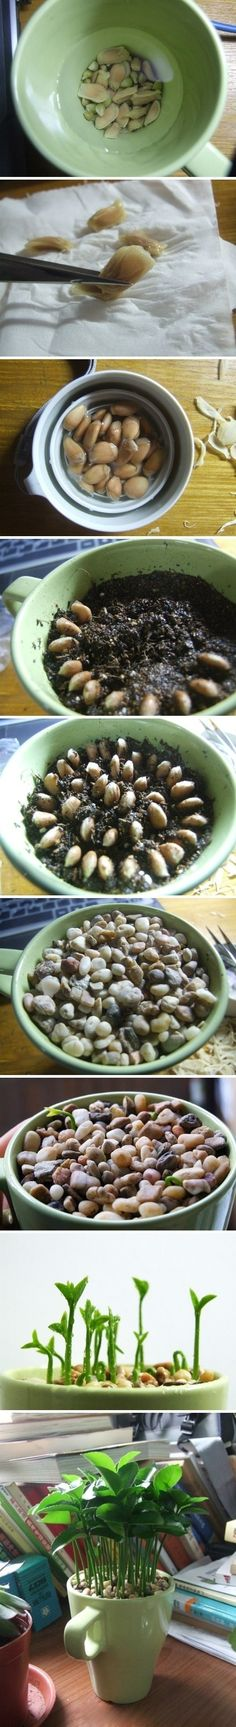 Plant lemon seeds.